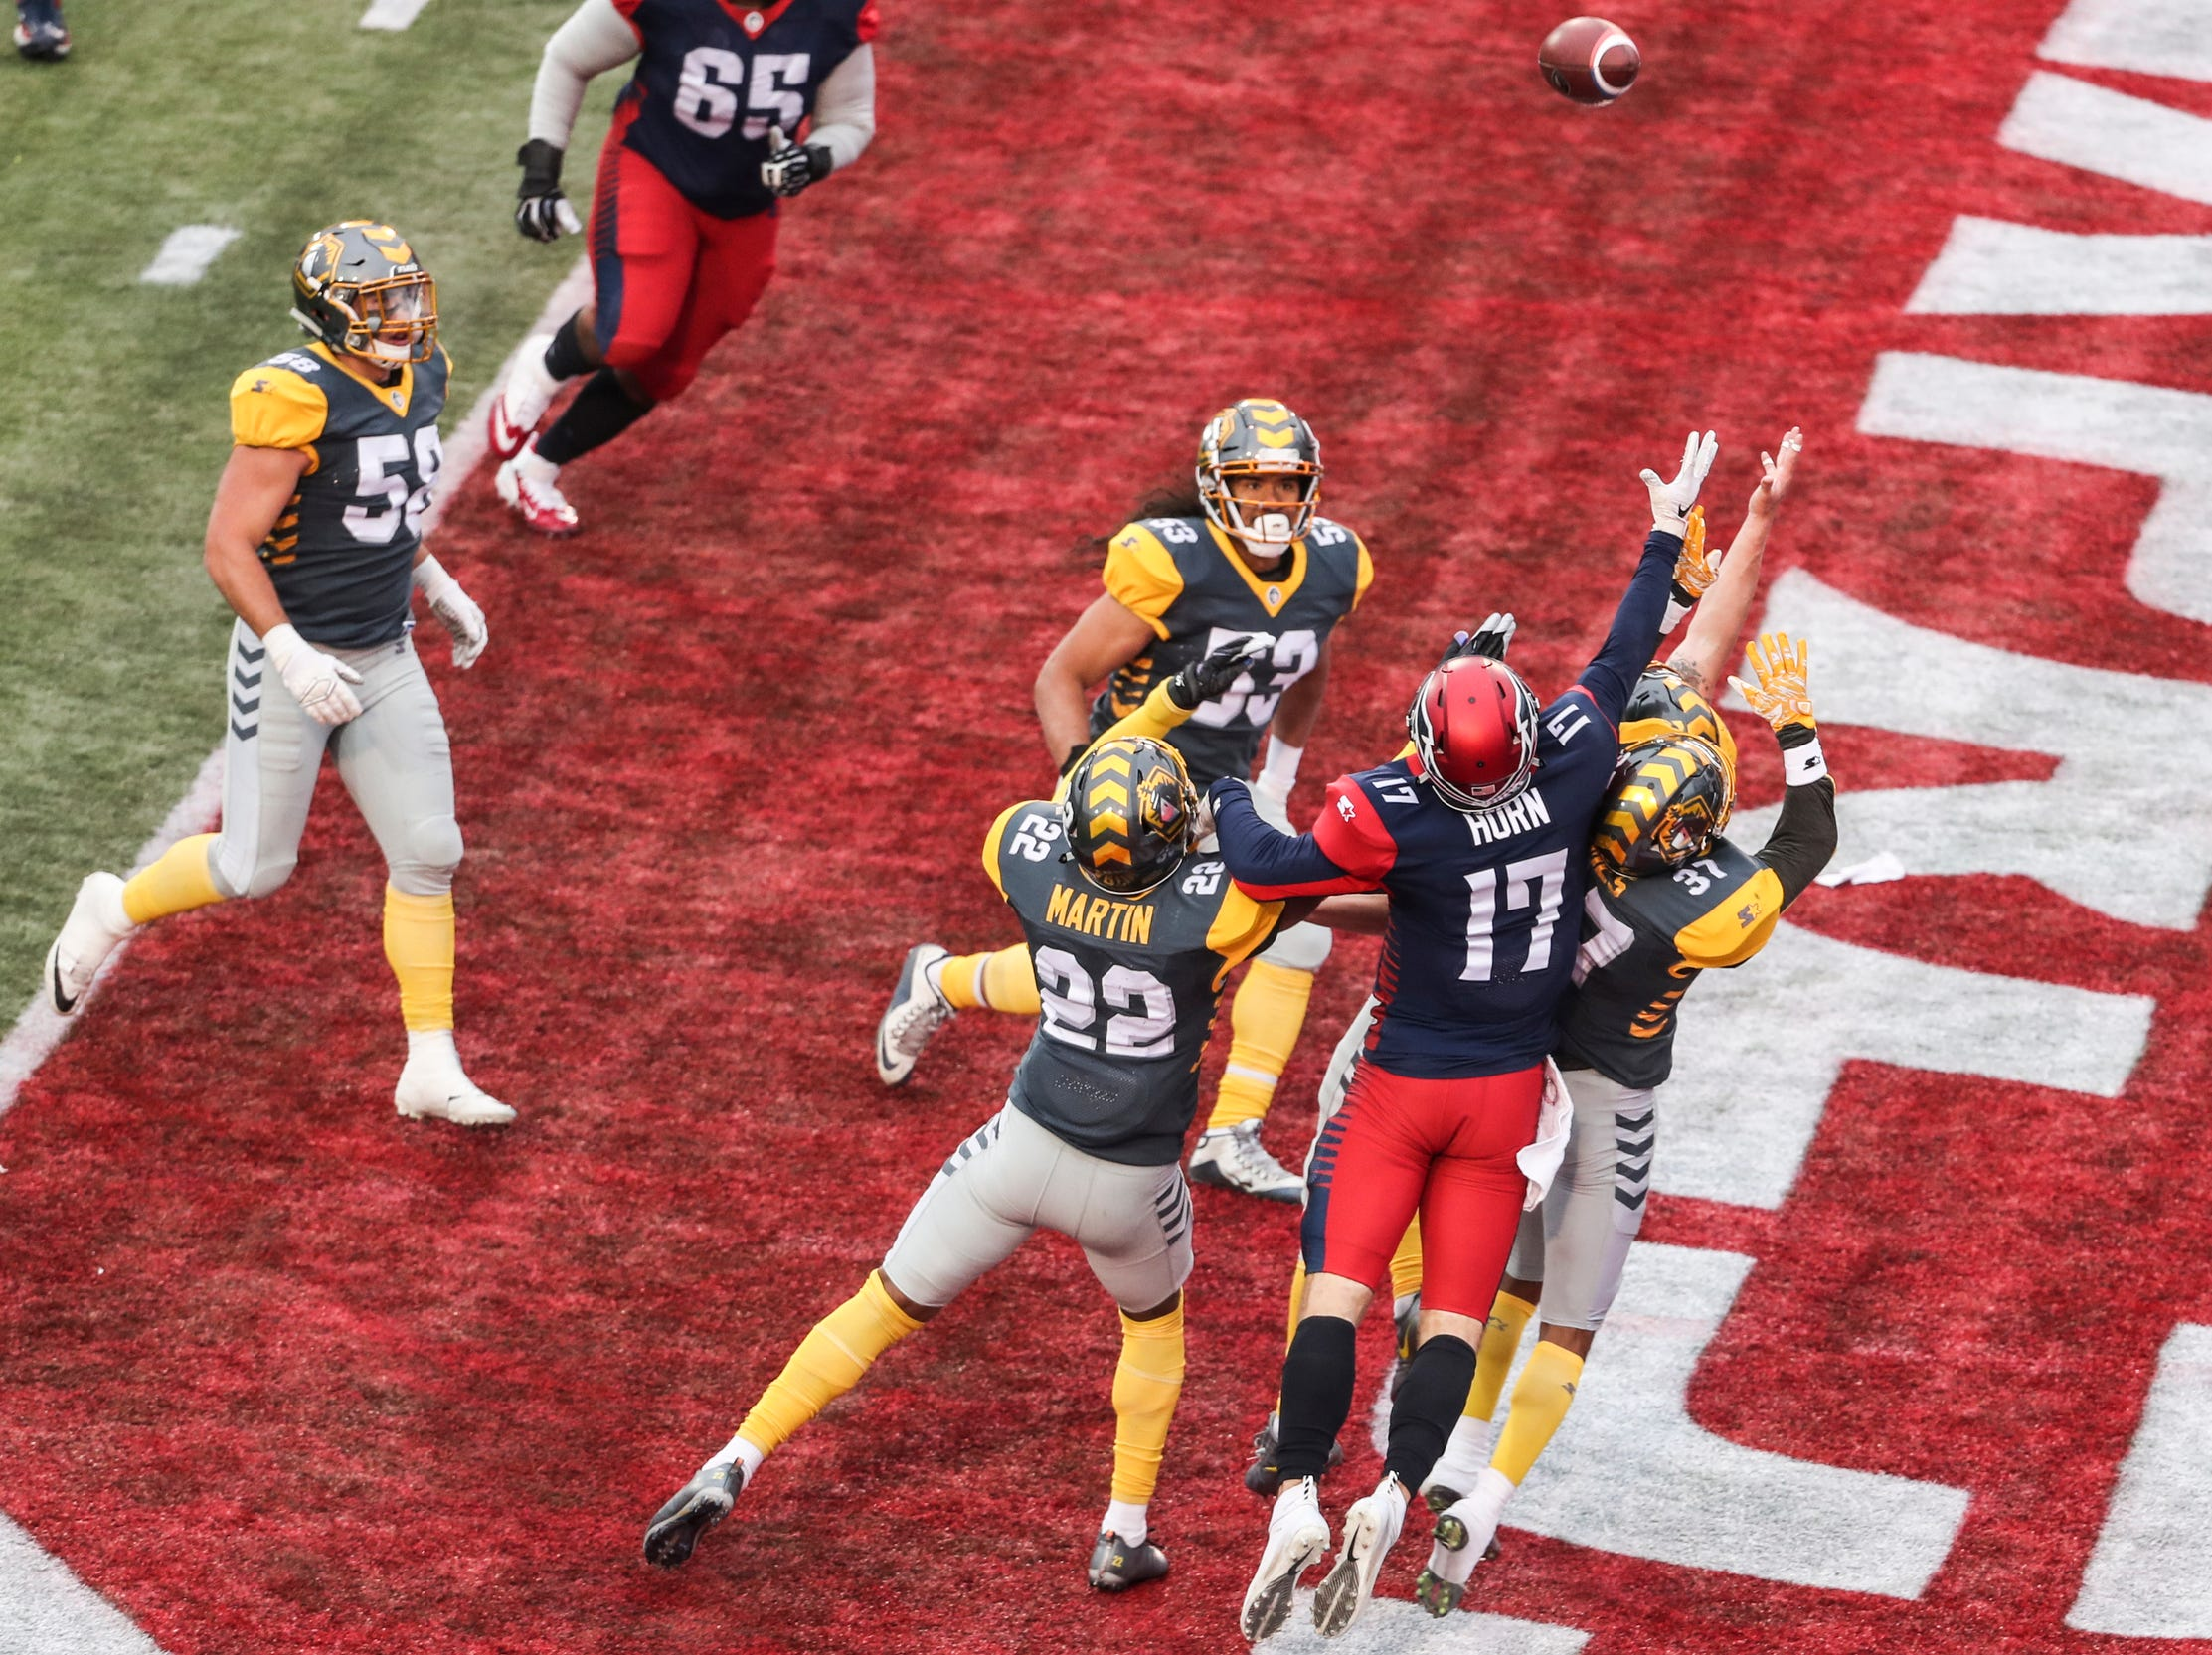 March 02, 2019 - The Memphis Express were unable to get the extra points after a touchdown during Saturday's game against the San Diego Fleet.